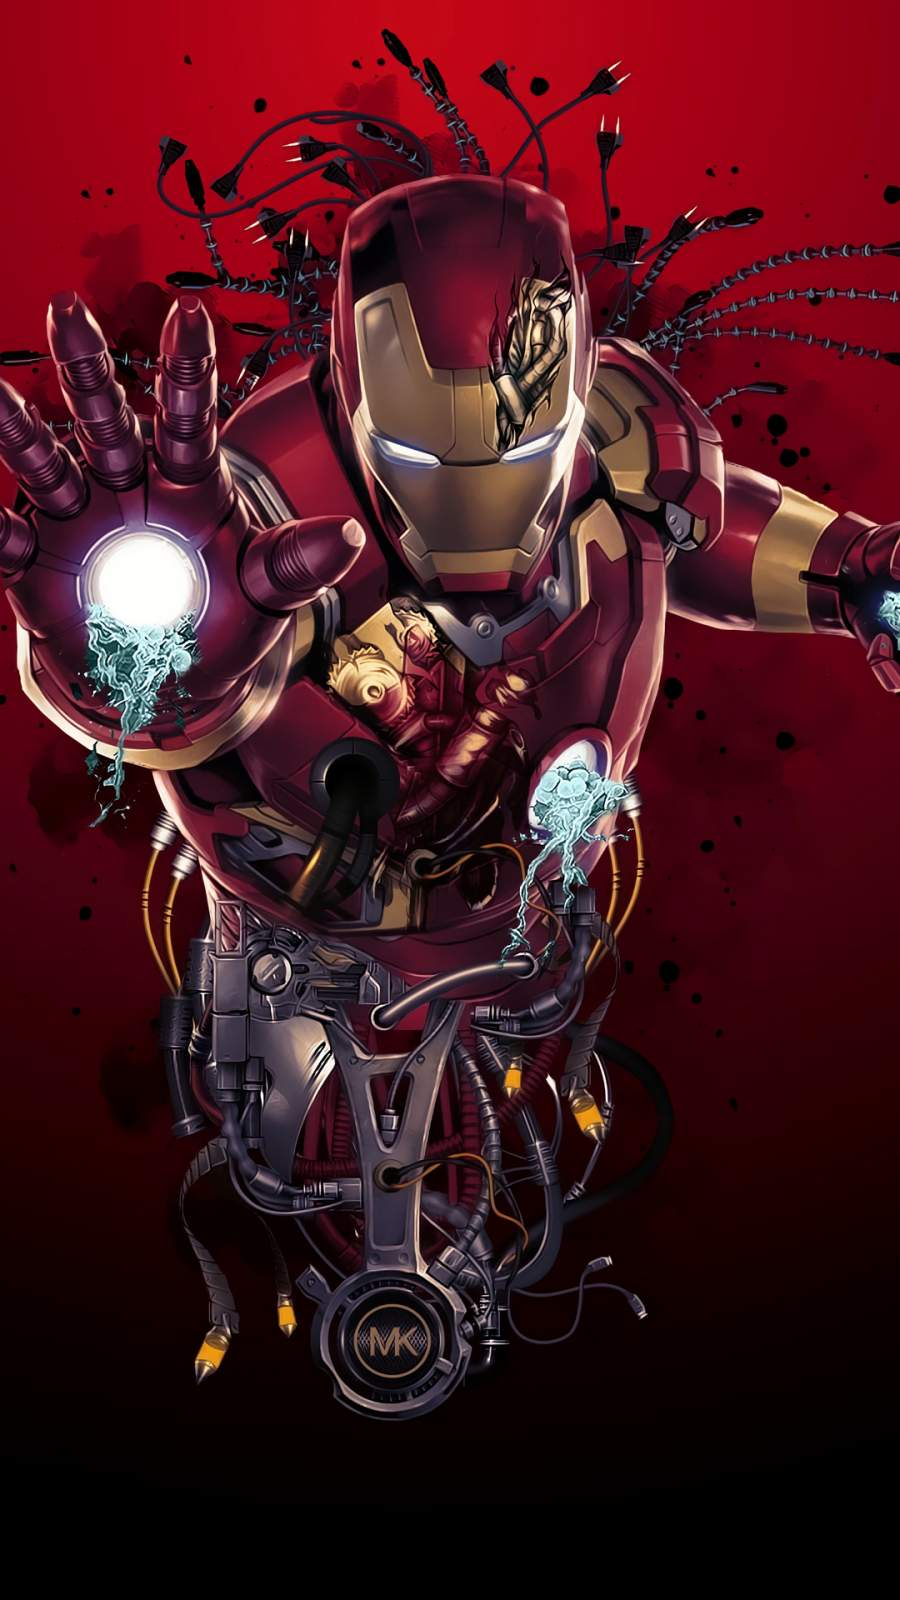 Iron Man Digital Art iPhone Wallpaper2